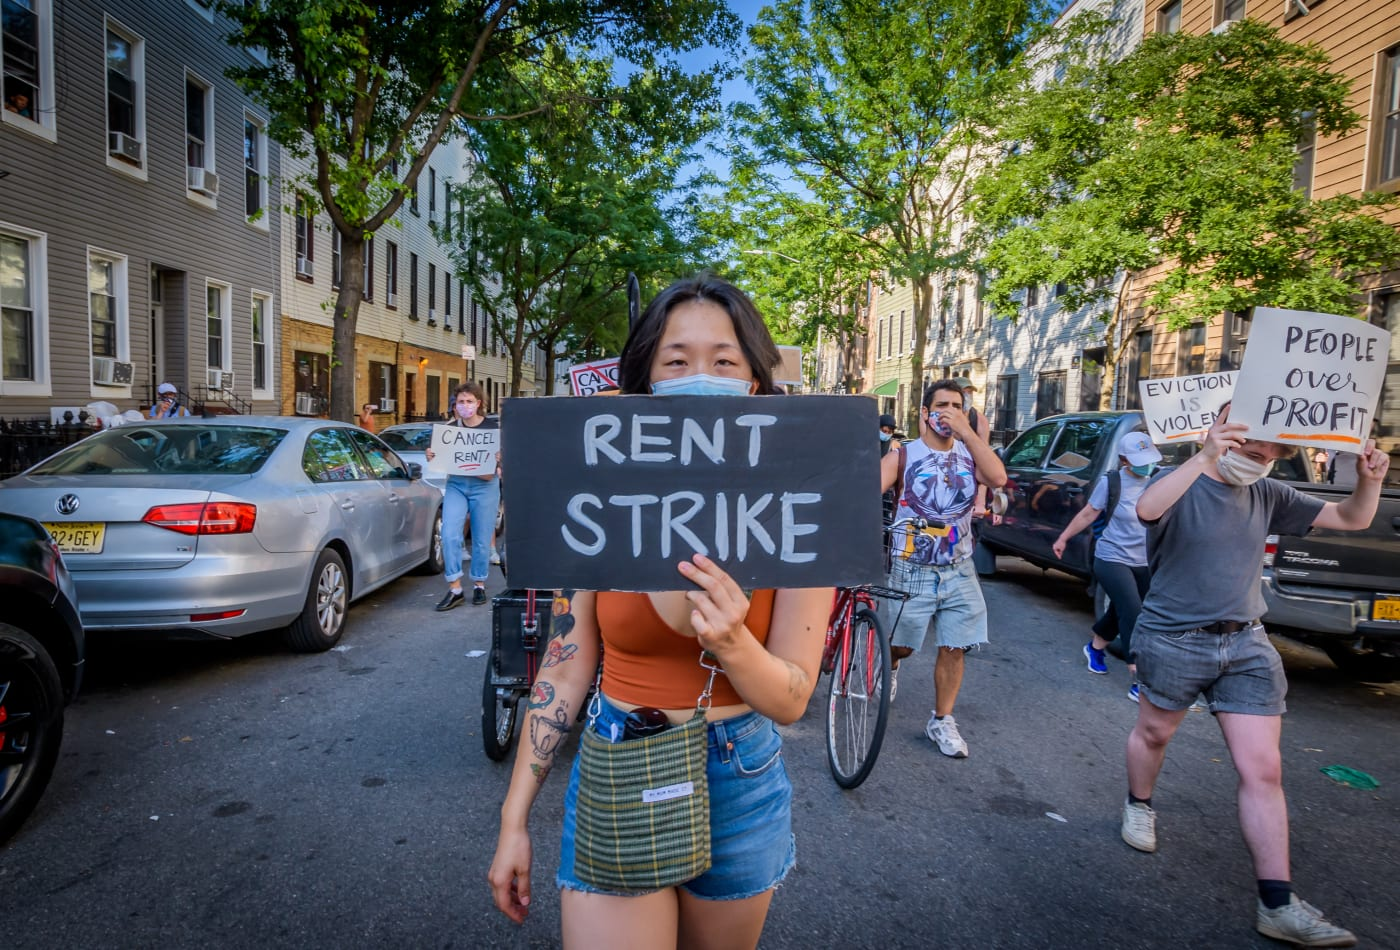 Image of woman holding up a rent strike sign in a demonstration, people are marching down a street in Brooklyn